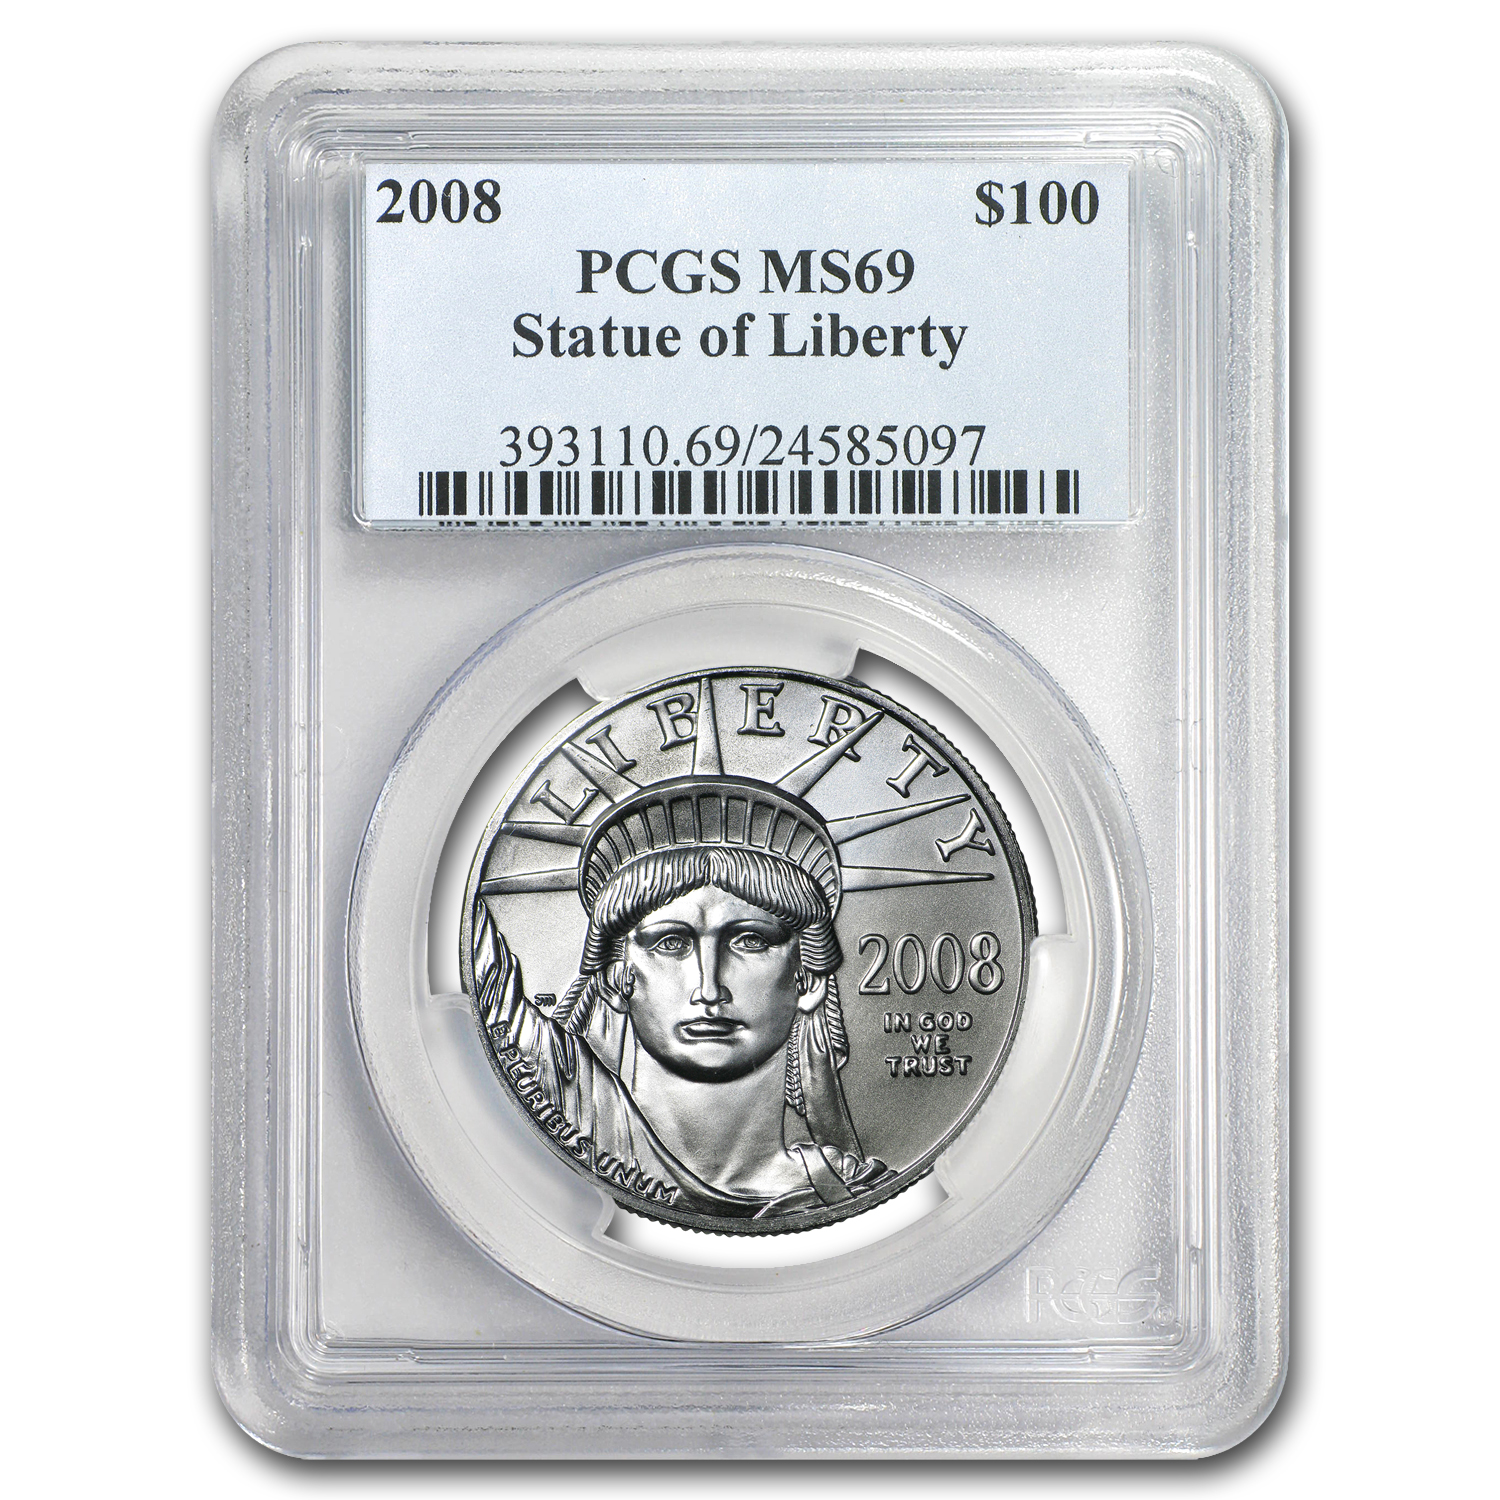 2008 1 oz Platinum American Eagle MS-69 PCGS